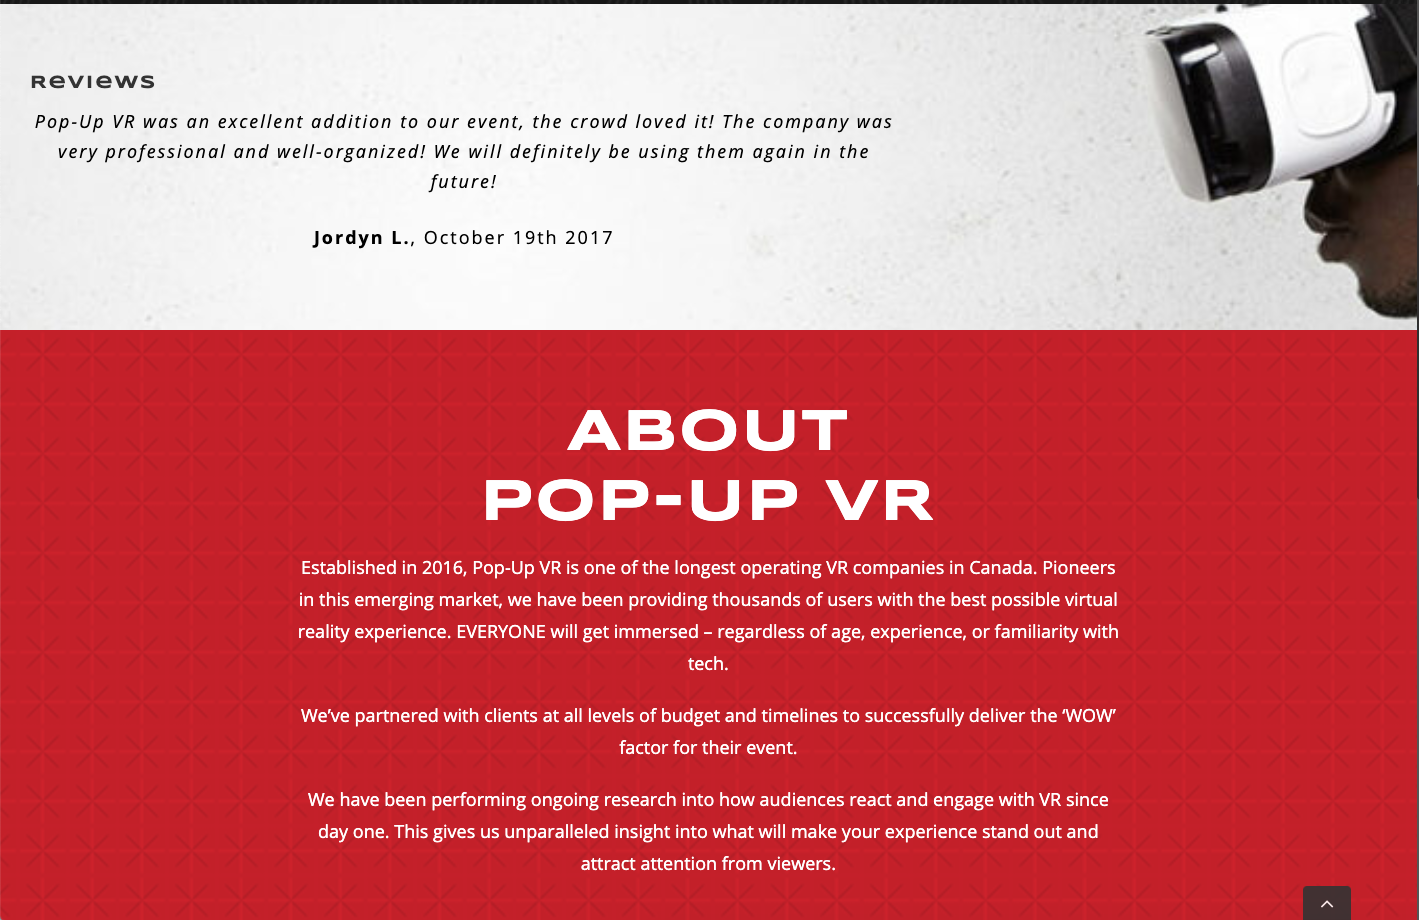 pop-up vr about